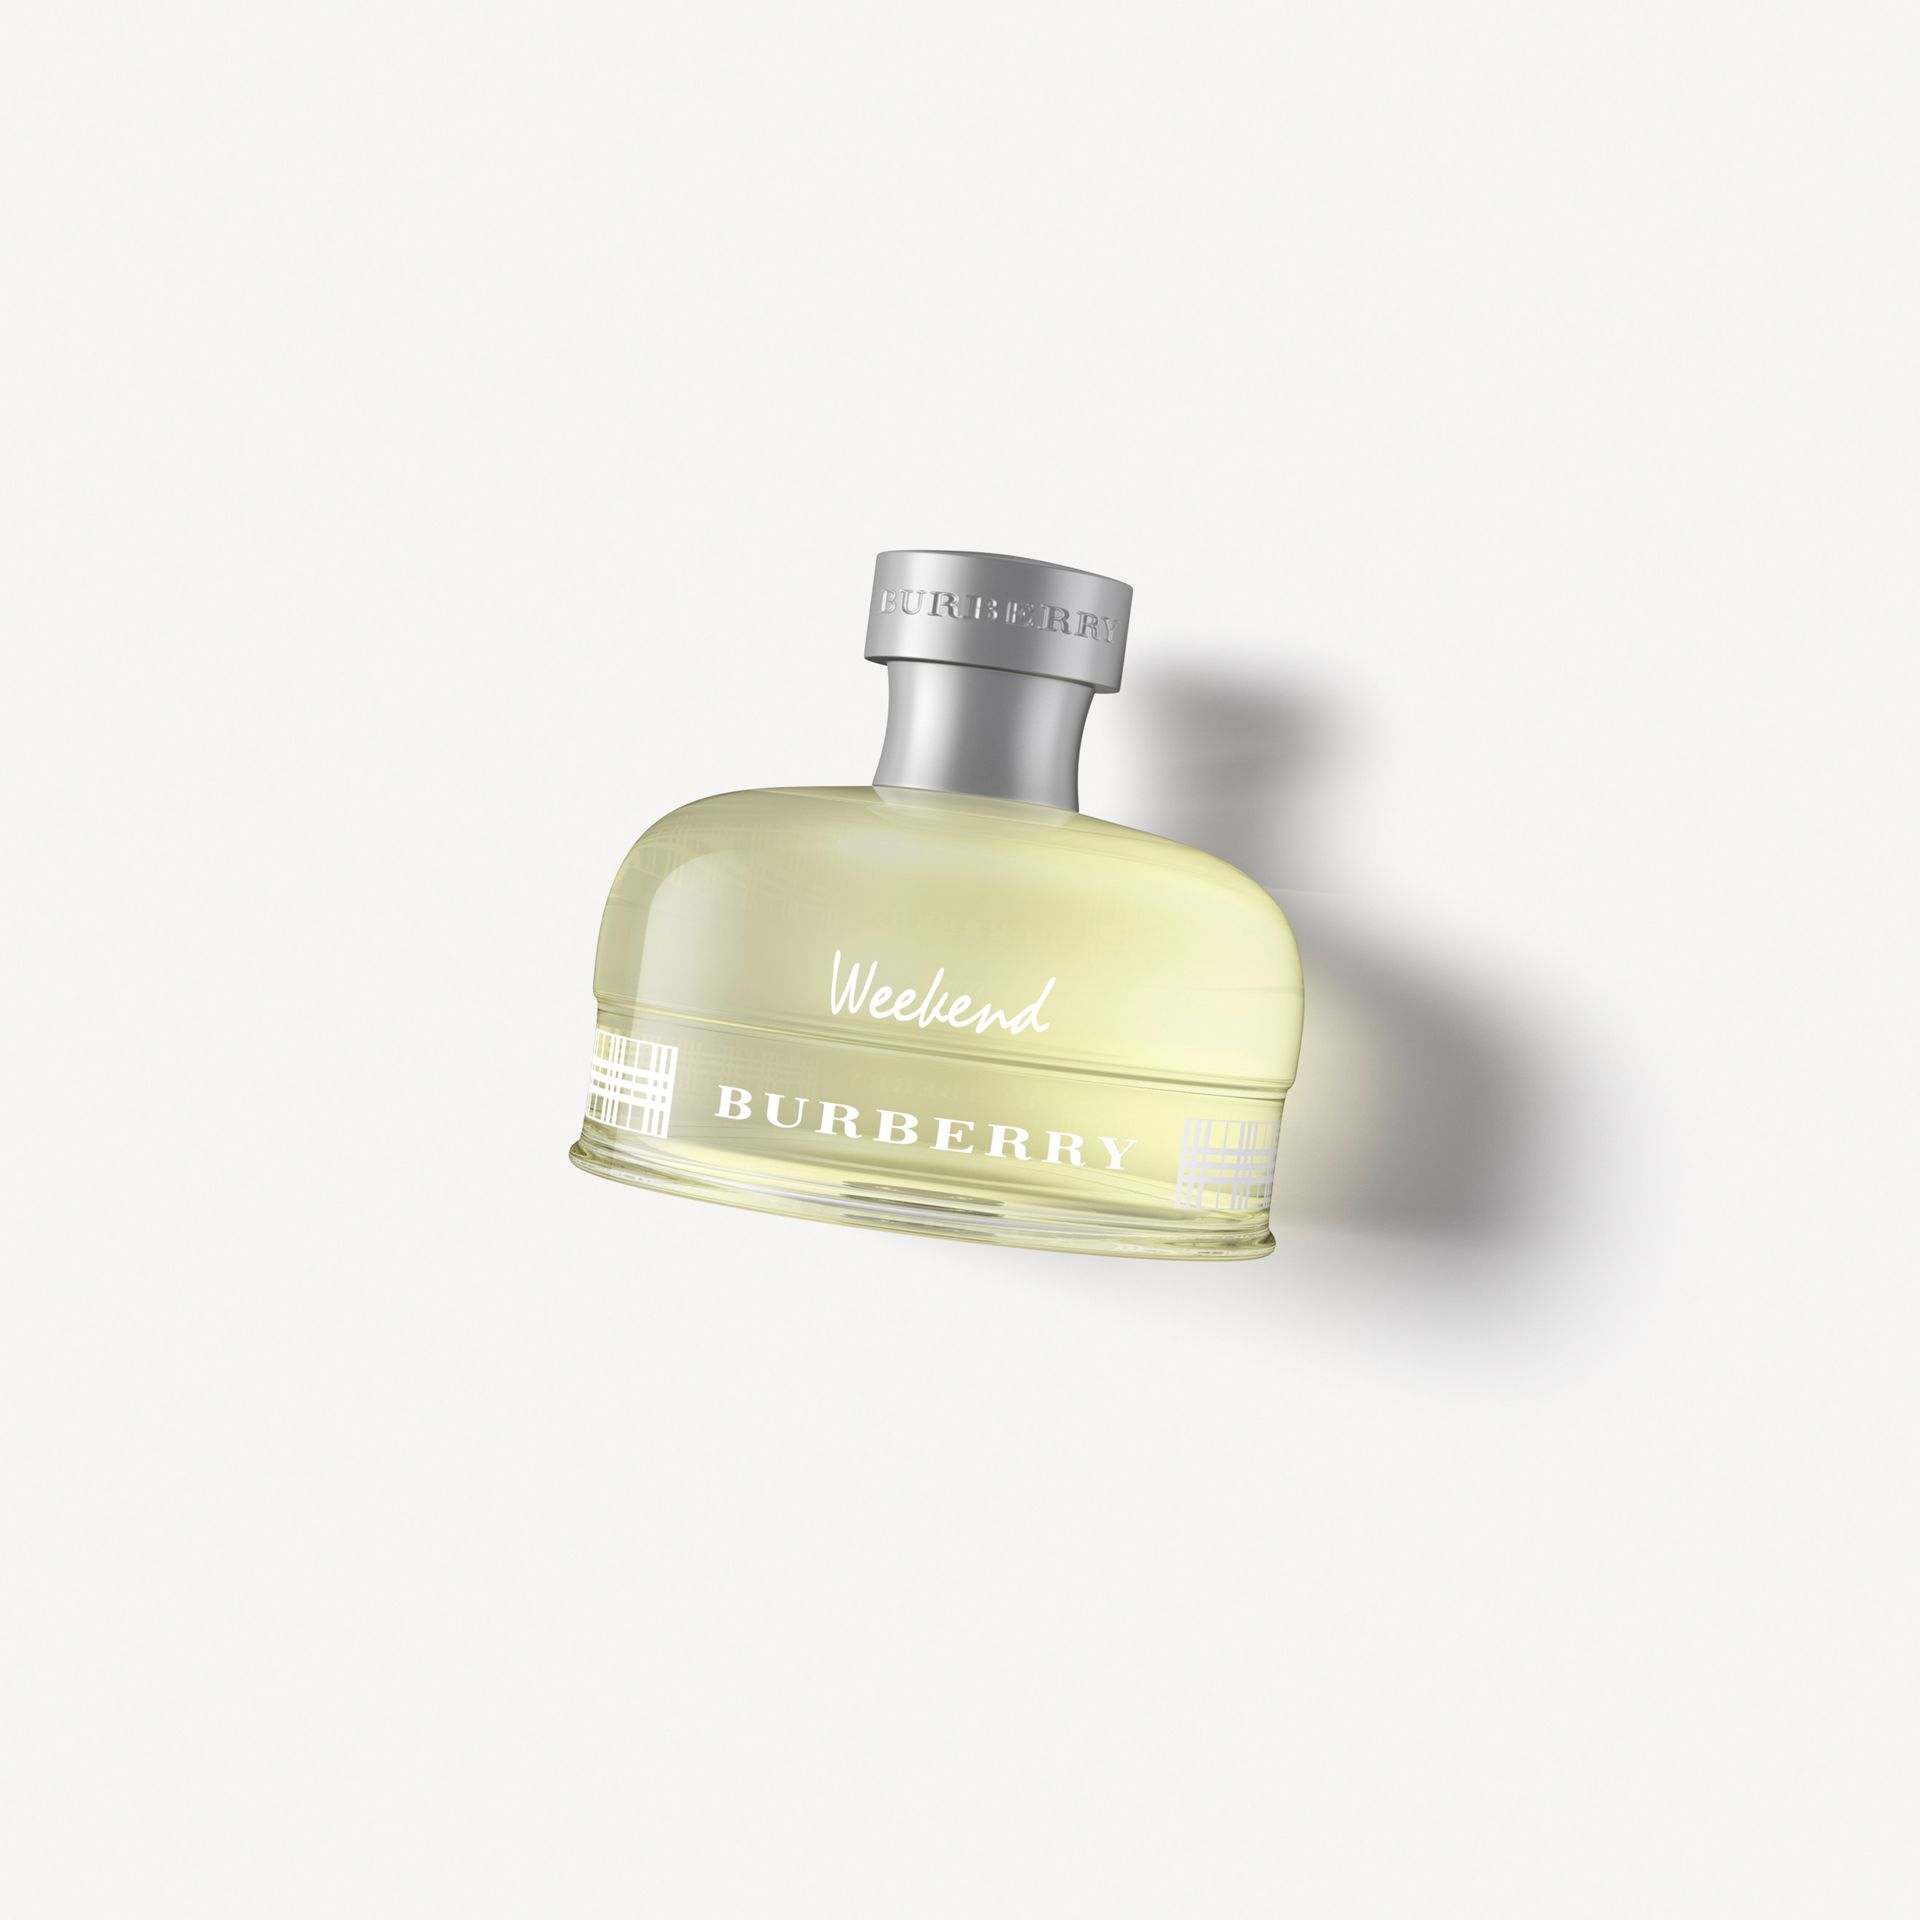 Burberry Weekend Eau de Parfum 100ml - gallery image 1